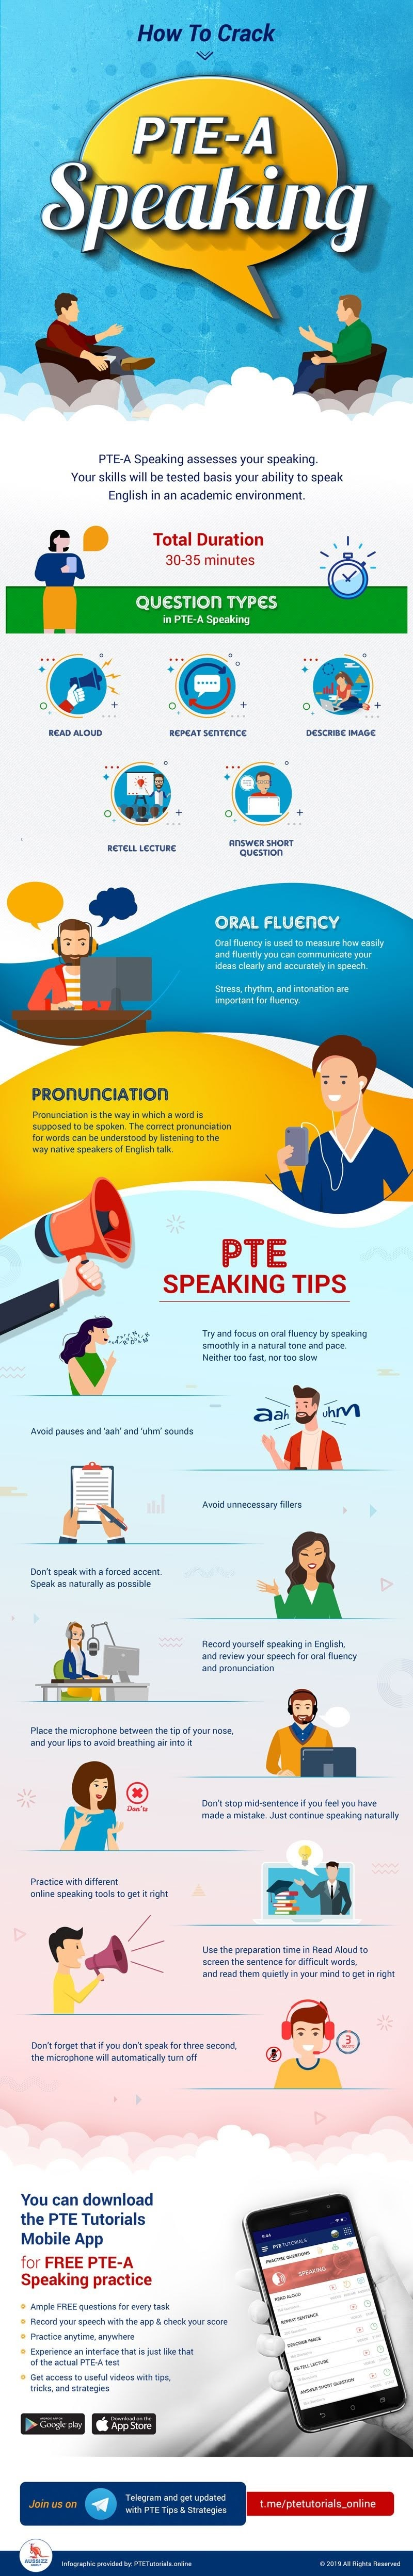 Know How to Crack PTE-A Speaking Like a Pro with PTE Tutorials! #infographic